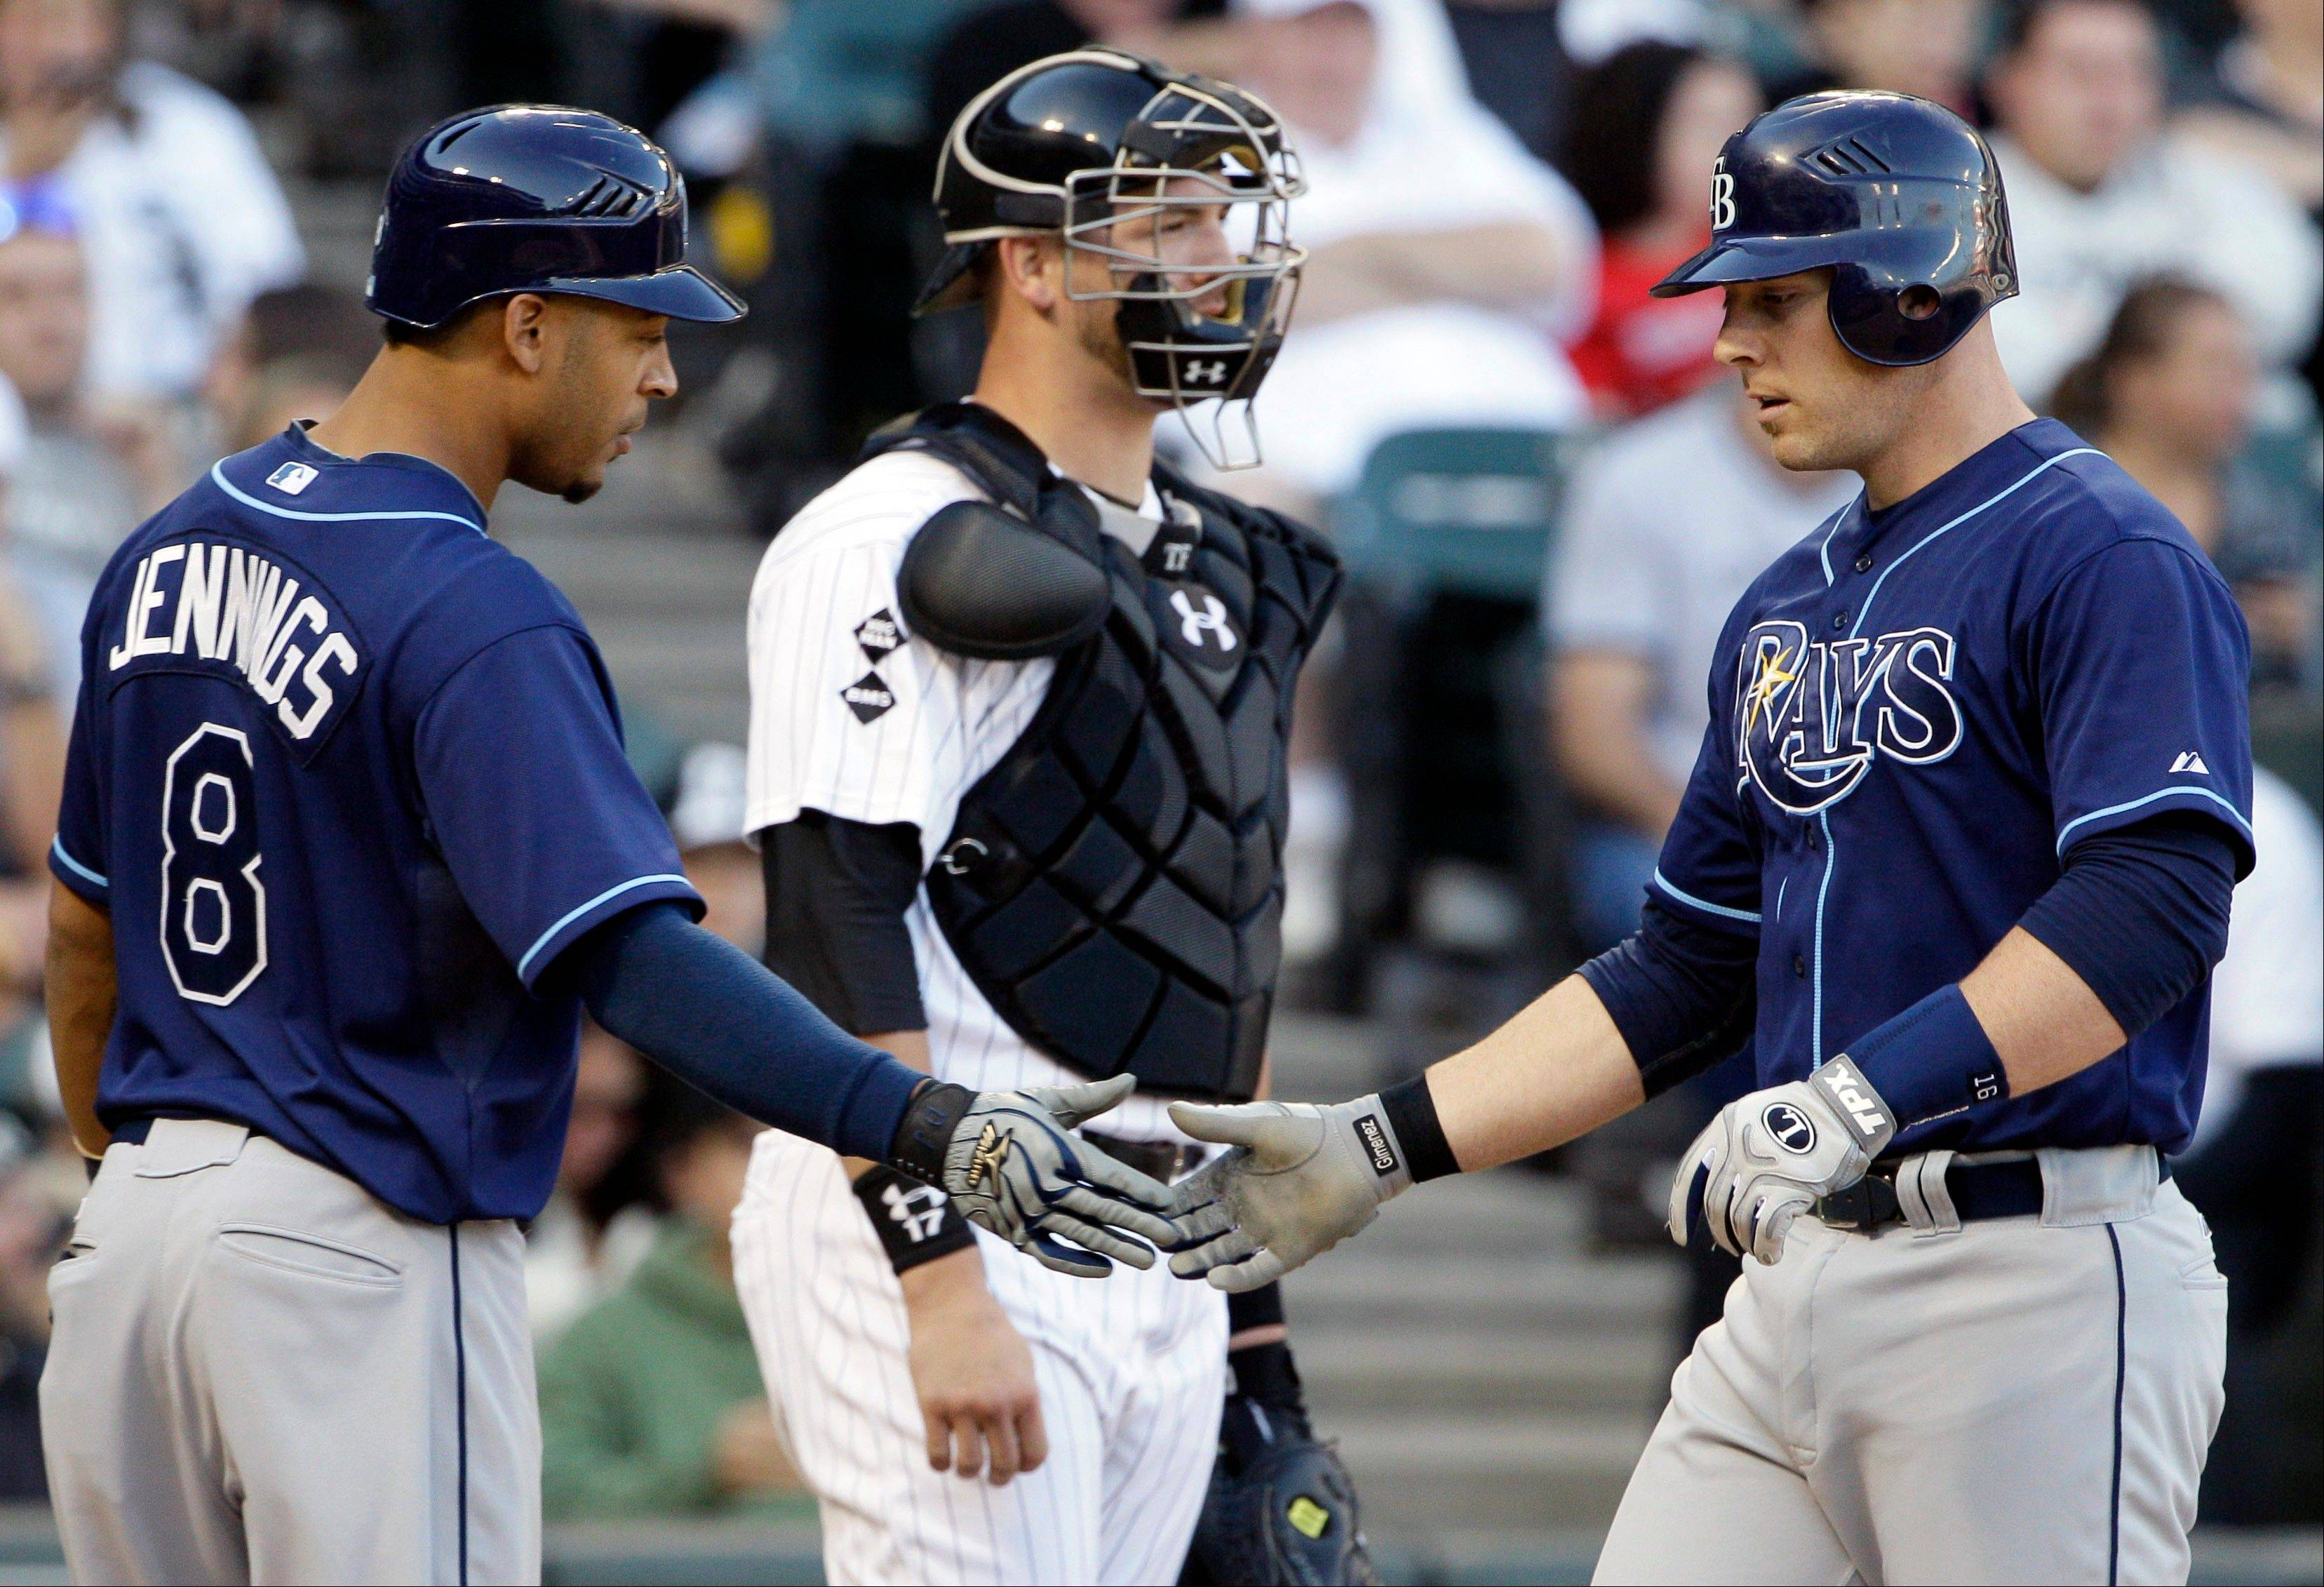 Tampa Bay Rays' Chris Gimenez, right, celebrates with Desmond Jennings, left, after hitting a solo homer. Matt Moore pitched one-hit ball into the sixth, Matt Joyce homered twice and the Tampa Bay Rays stayed three games behind in the chase for the second AL wild card Saturday by beating the sliding White Sox 10-4.